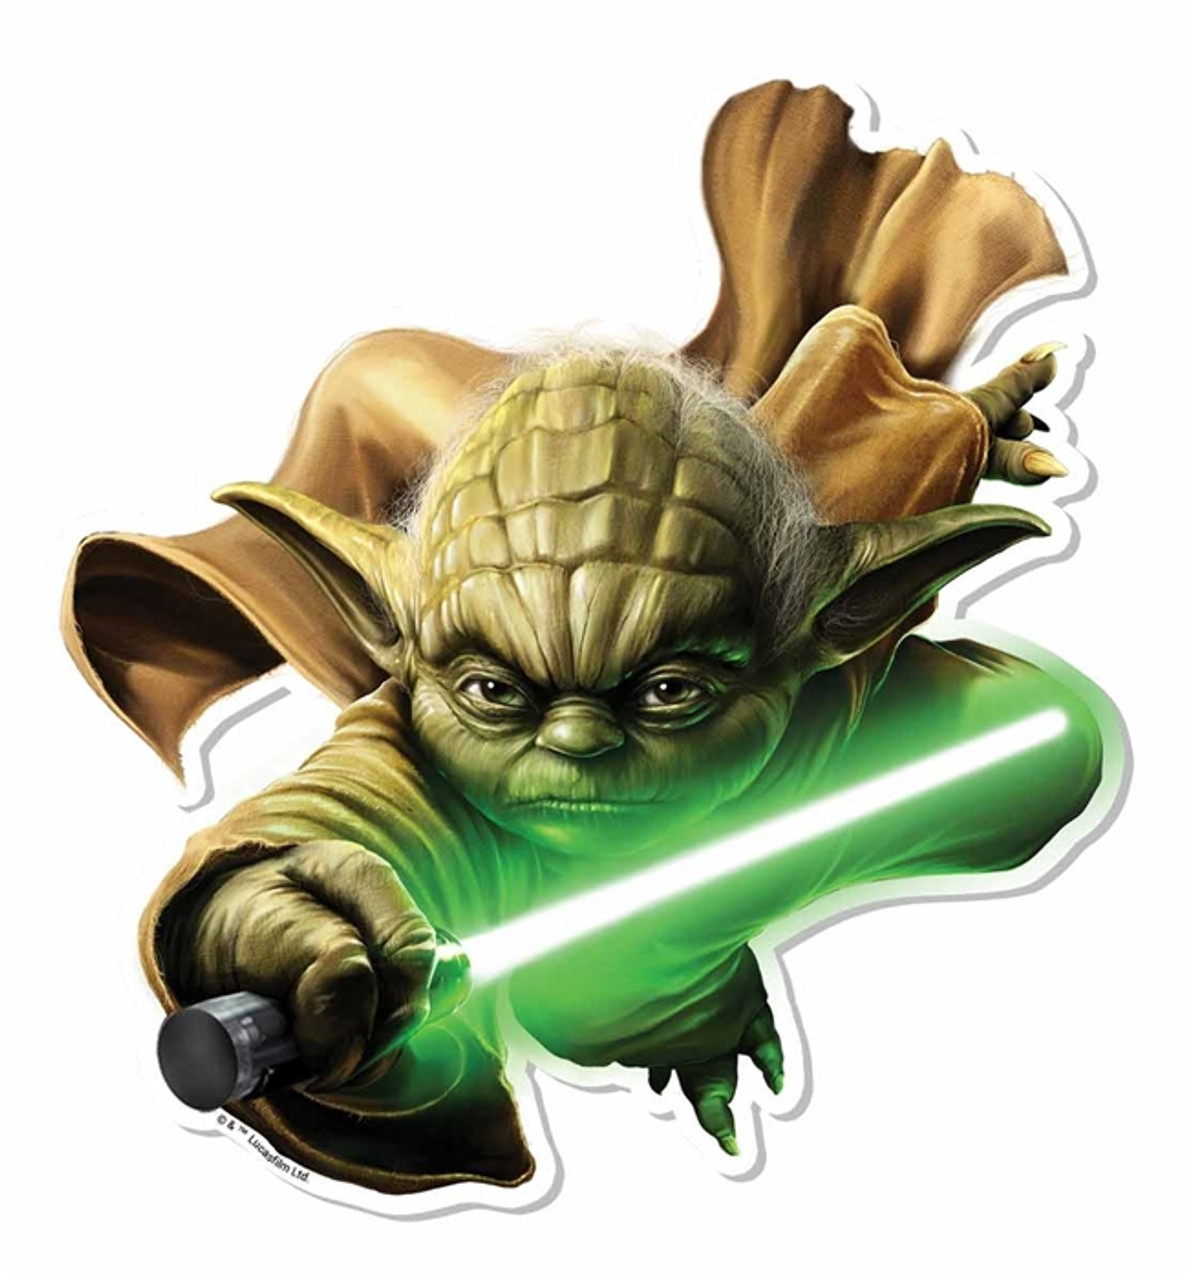 Yoda 3d Effect Star Wars Pop Out Cardboard Cutout Wall Art Buy Pop